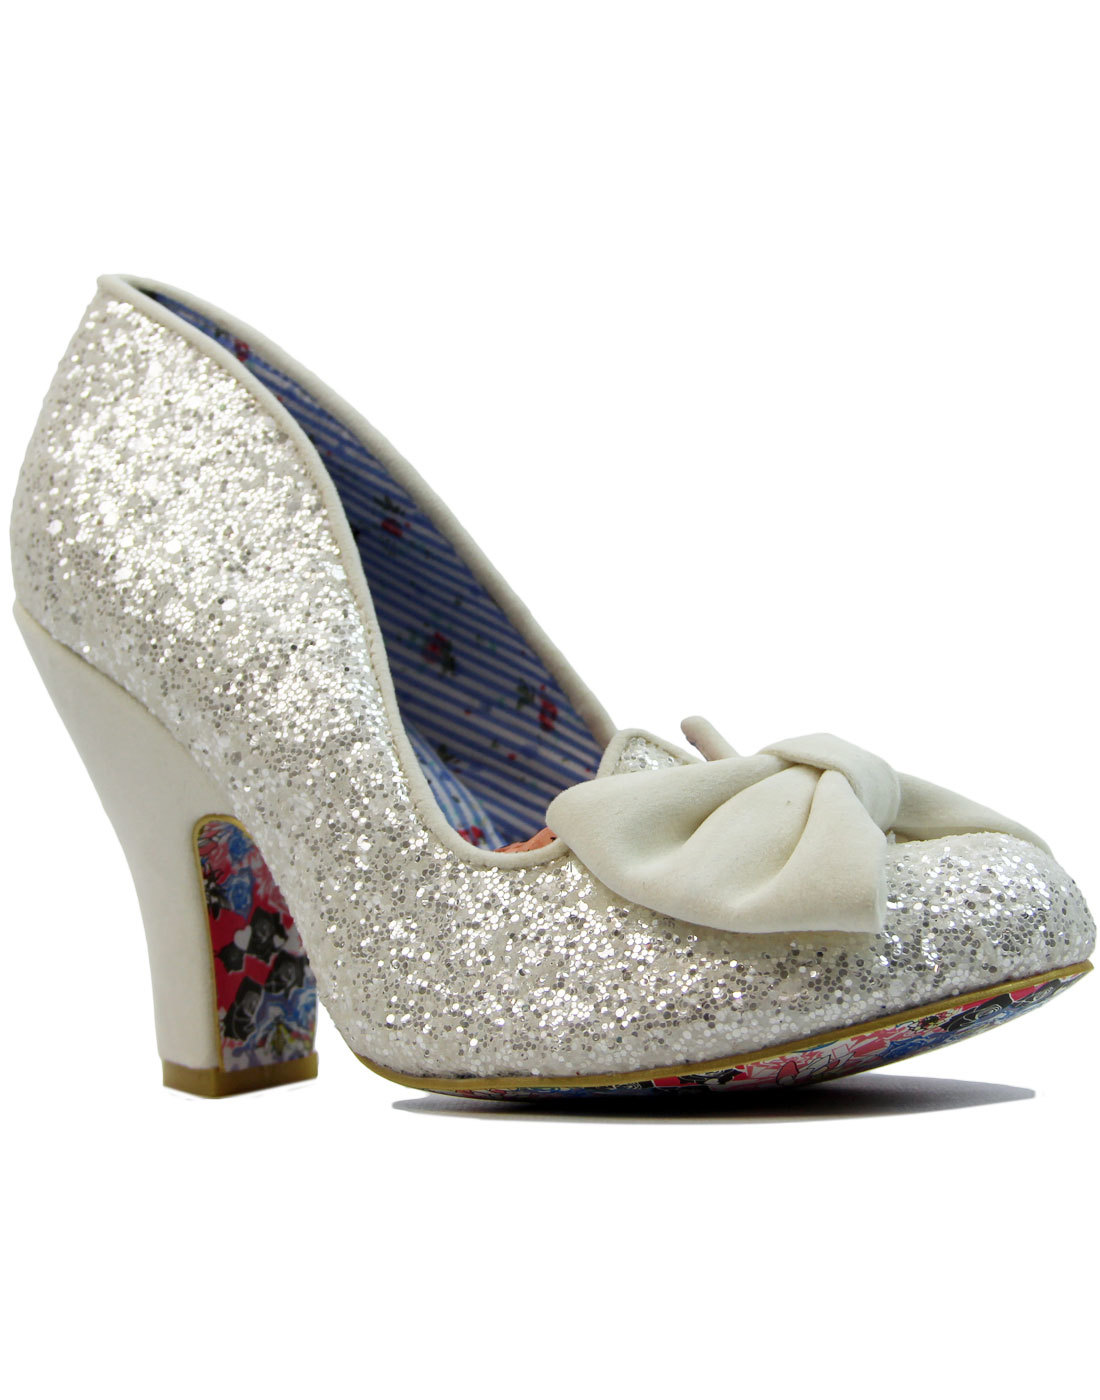 62362cbd52b9 Women s Shoes · Wedding. Nick of time IRREGULAR CHOICE Sequin Glitter Heels.  Nick of time IRREGULAR CHOICE Sequin Glitter Heels